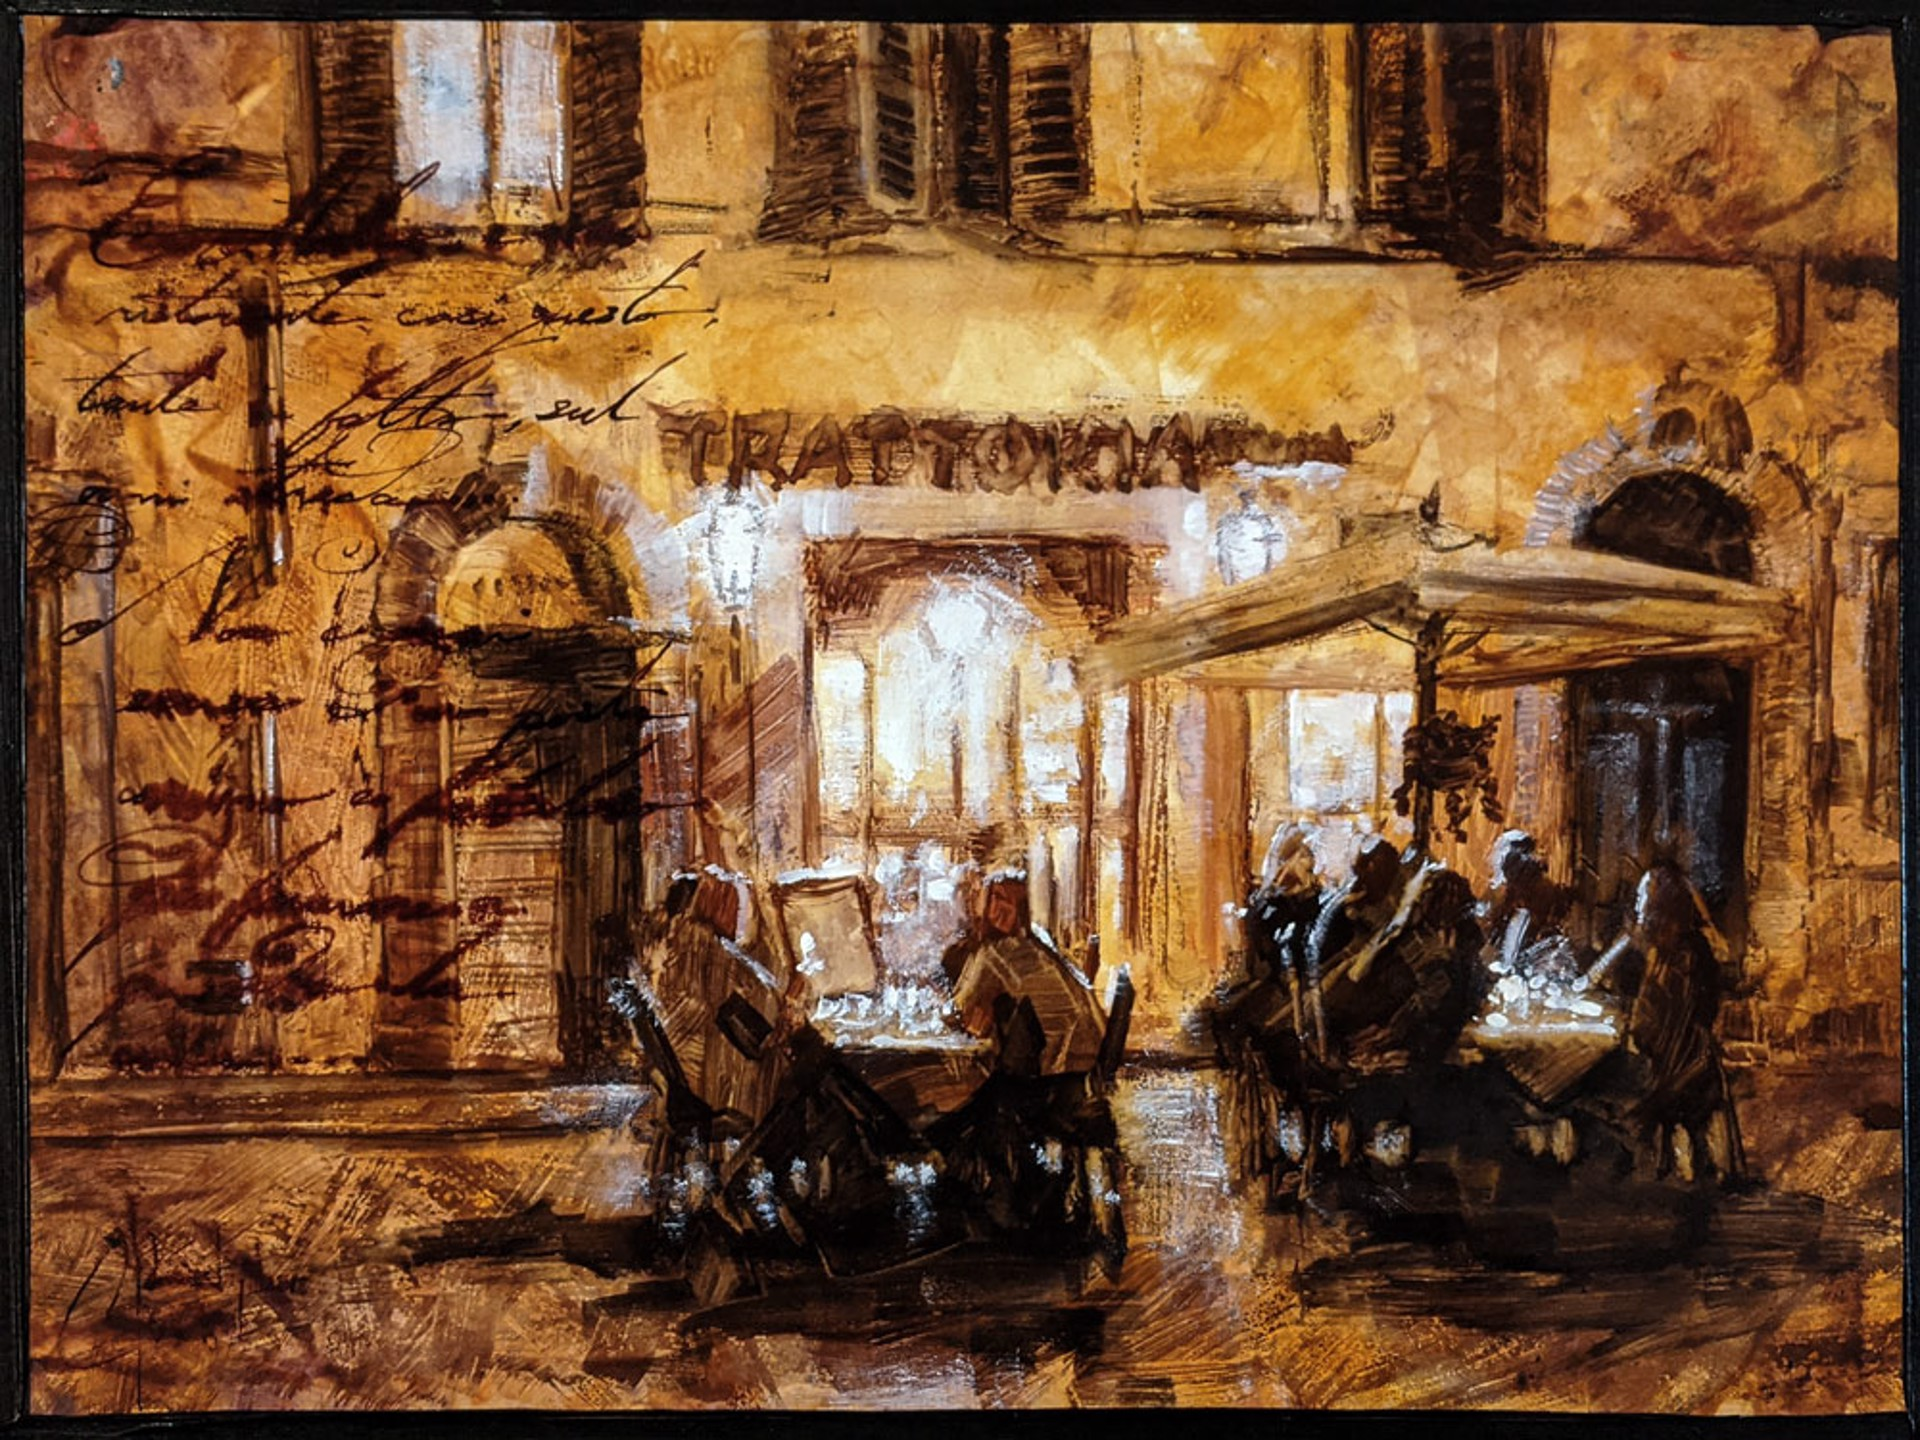 Trattoria in Rome by Christopher Clark